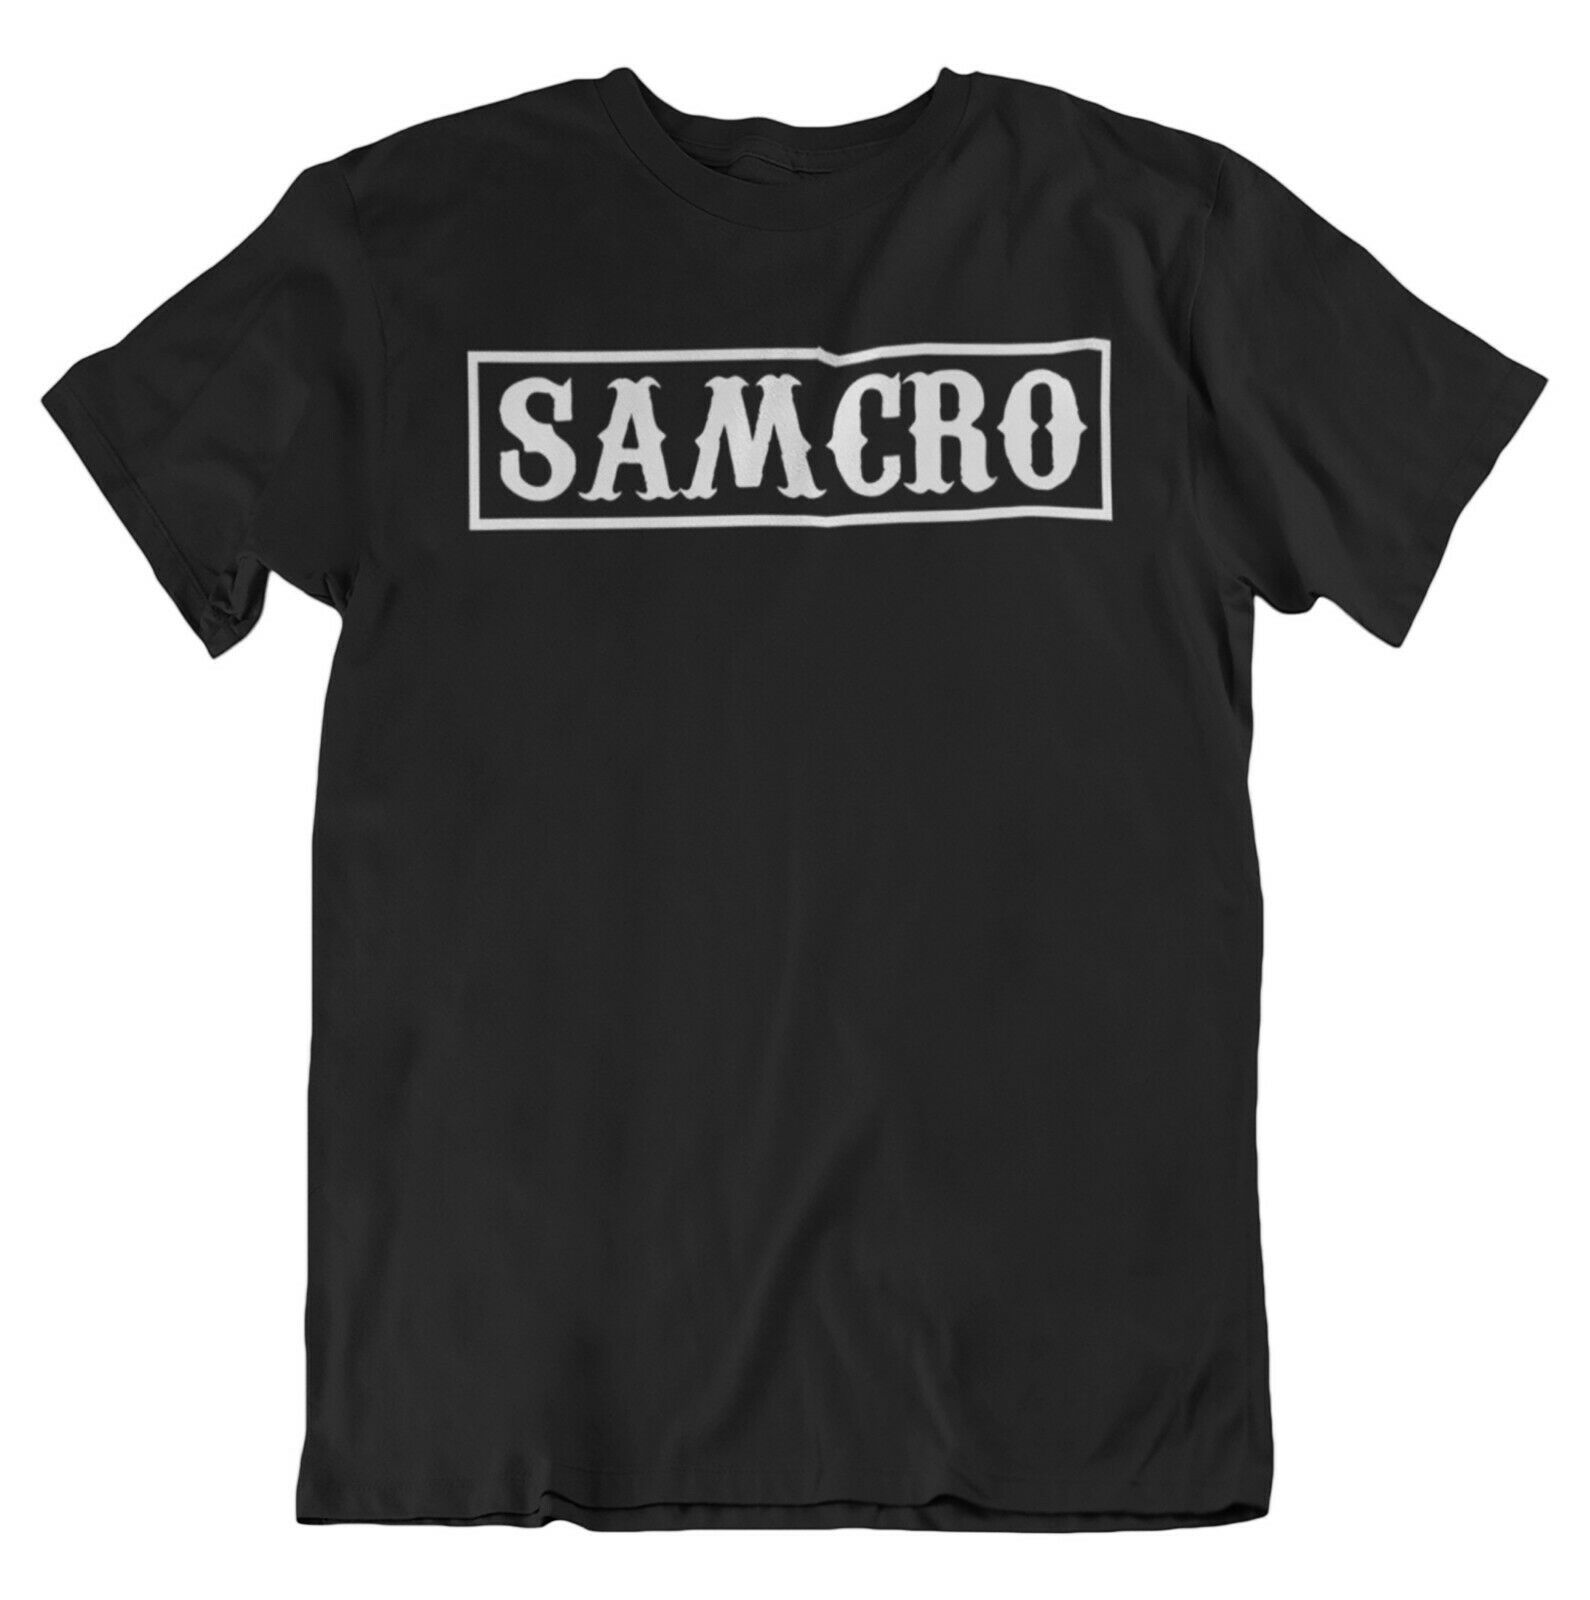 SAMCRO BLOCK Sons Of Anarchy Inspired Men's T-Shirt Top Summer Fashion Streetwear Camiseta Masculina 100% Cotton T Shirt